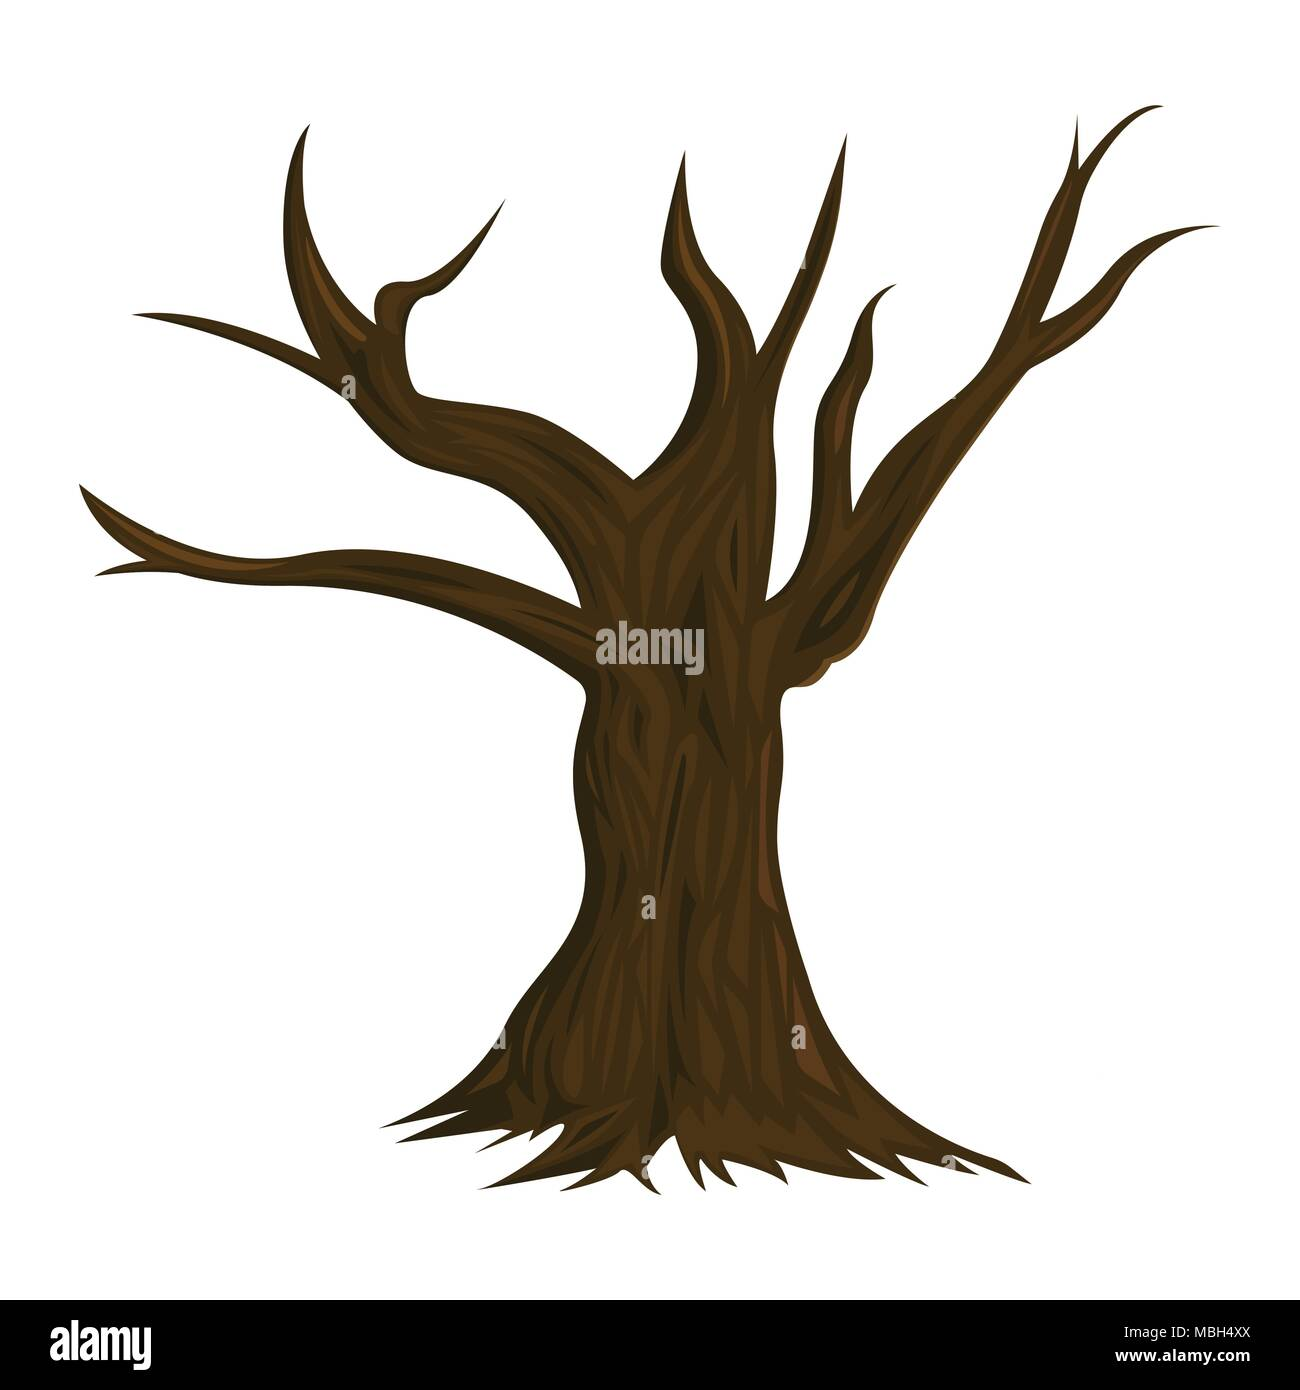 Illustration Of Dead Tree Isolated On White Background Stock Vector Image Art Alamy Tree drawing death, dead tree cartoon, angle, white, text png. https www alamy com illustration of dead tree isolated on white background image179241970 html